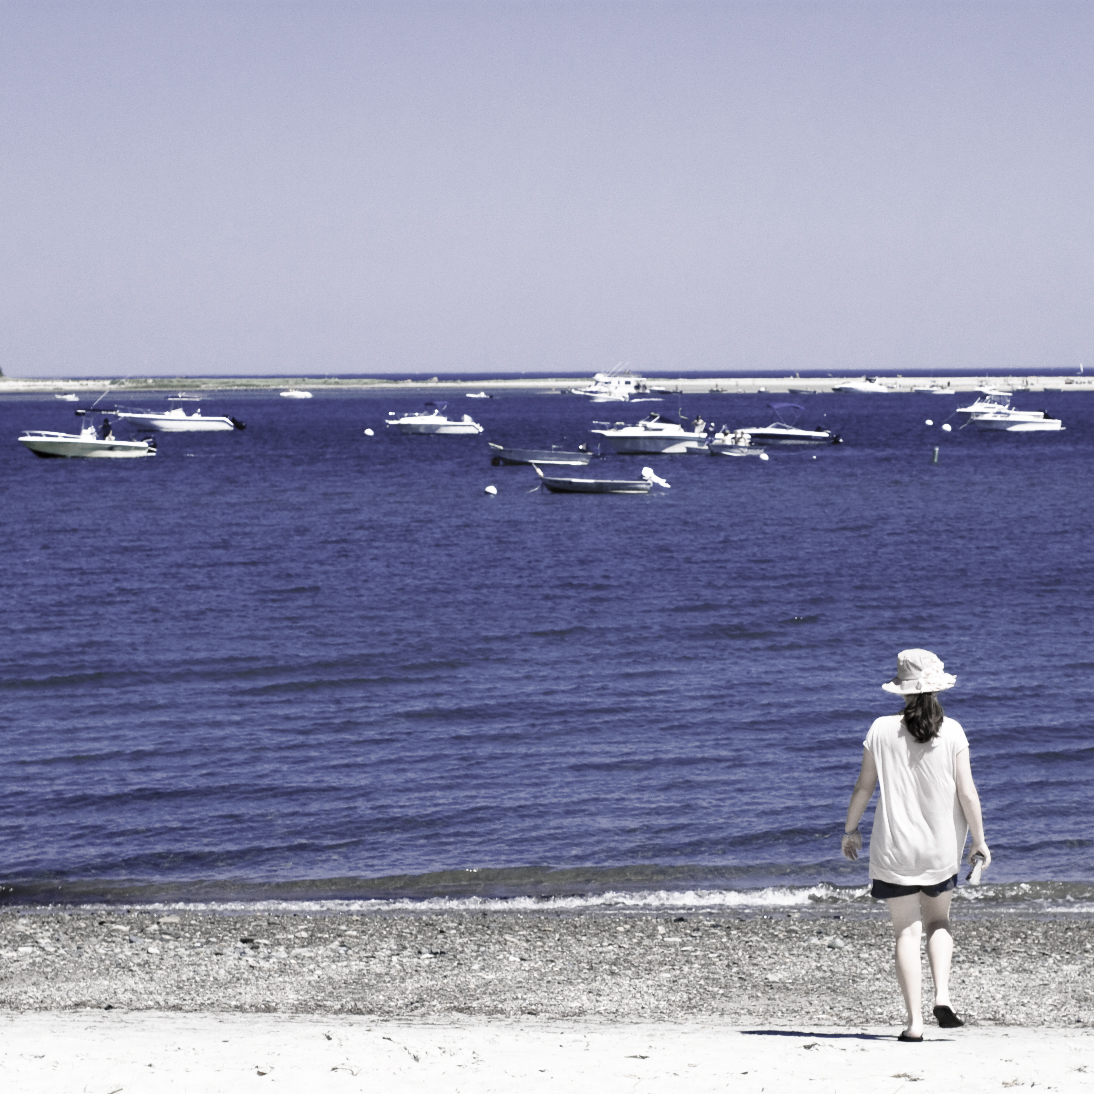 young woman walking on a beach with moored boats in the bay